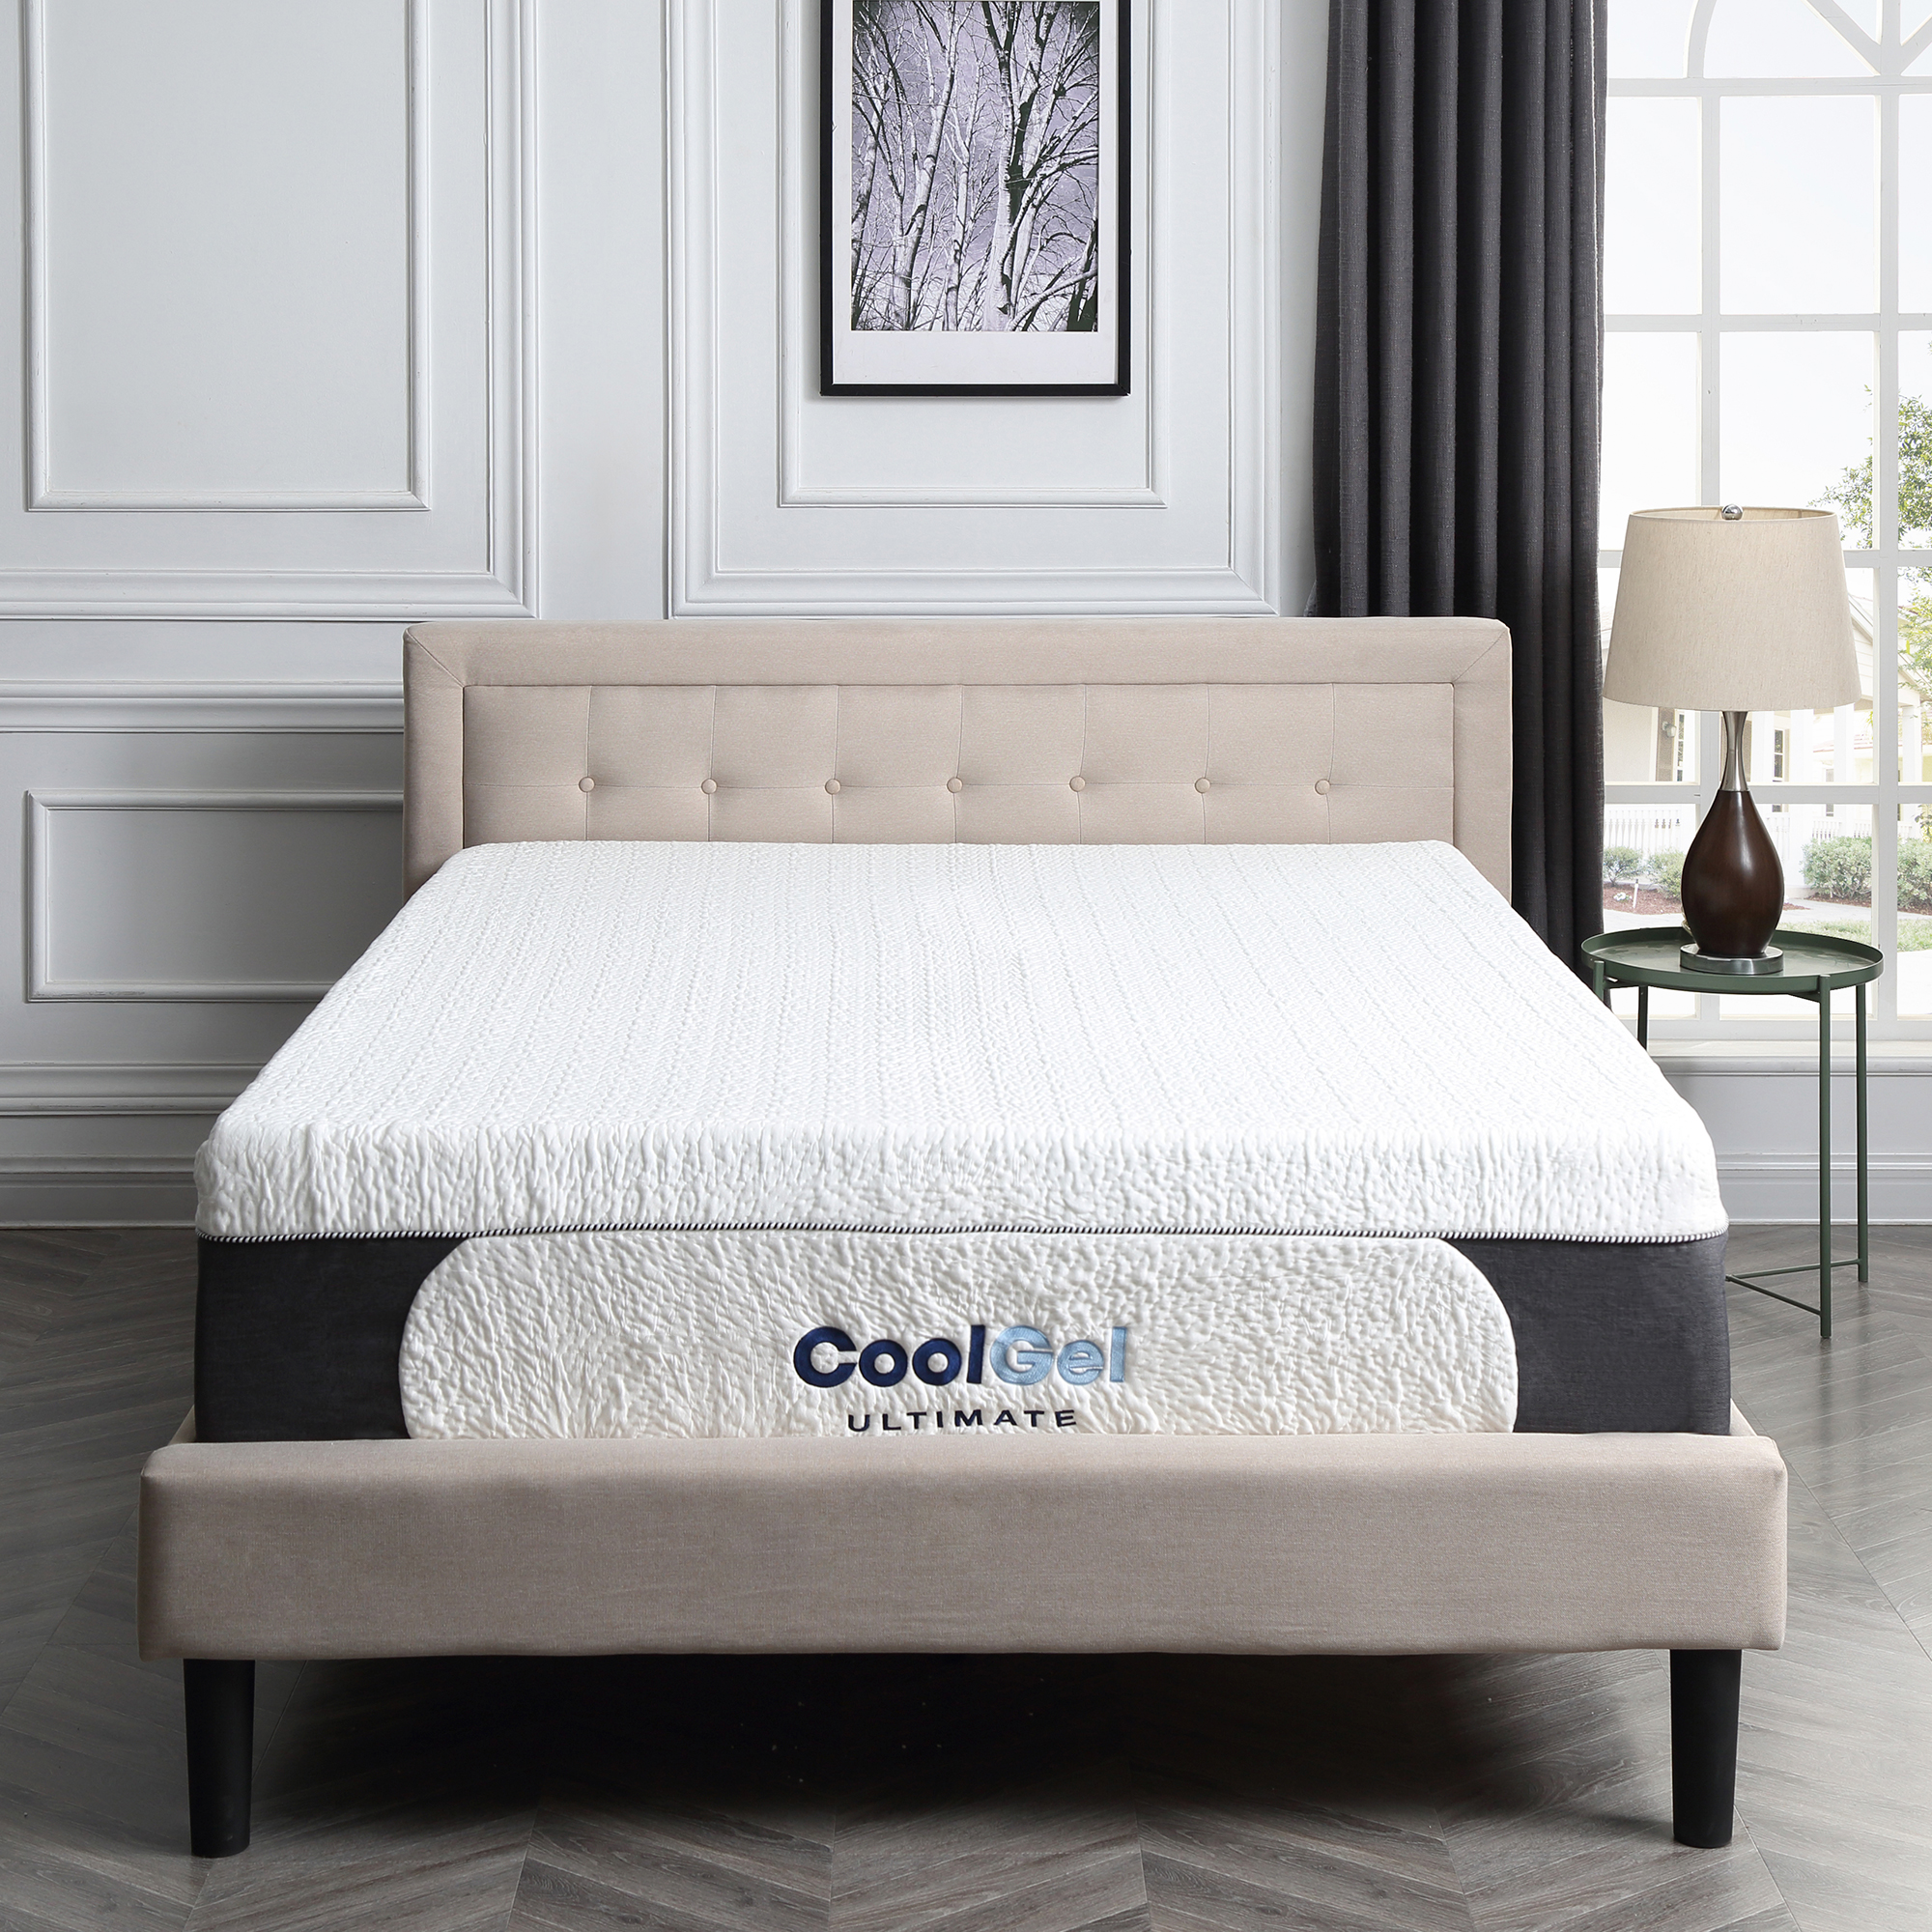 Modern Sleep Cool Gel Ultimate Gel Memory Foam 14-Inch Mattress with BONUS 2 Pillows, Queen